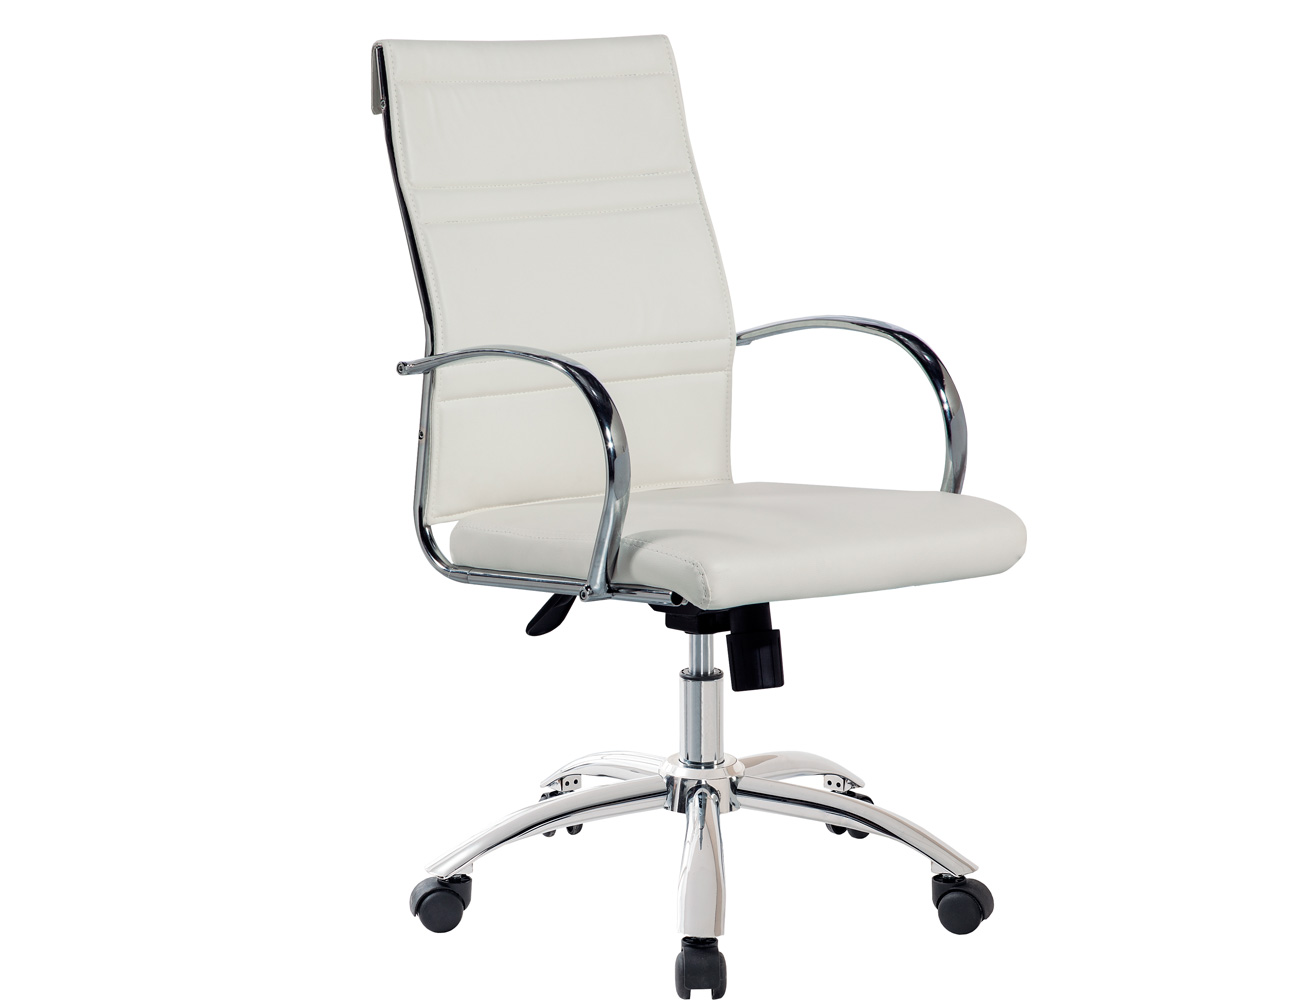 Silla escritorio blanca good silla de escritorio pc gamer for Ruedas para sillas de oficina